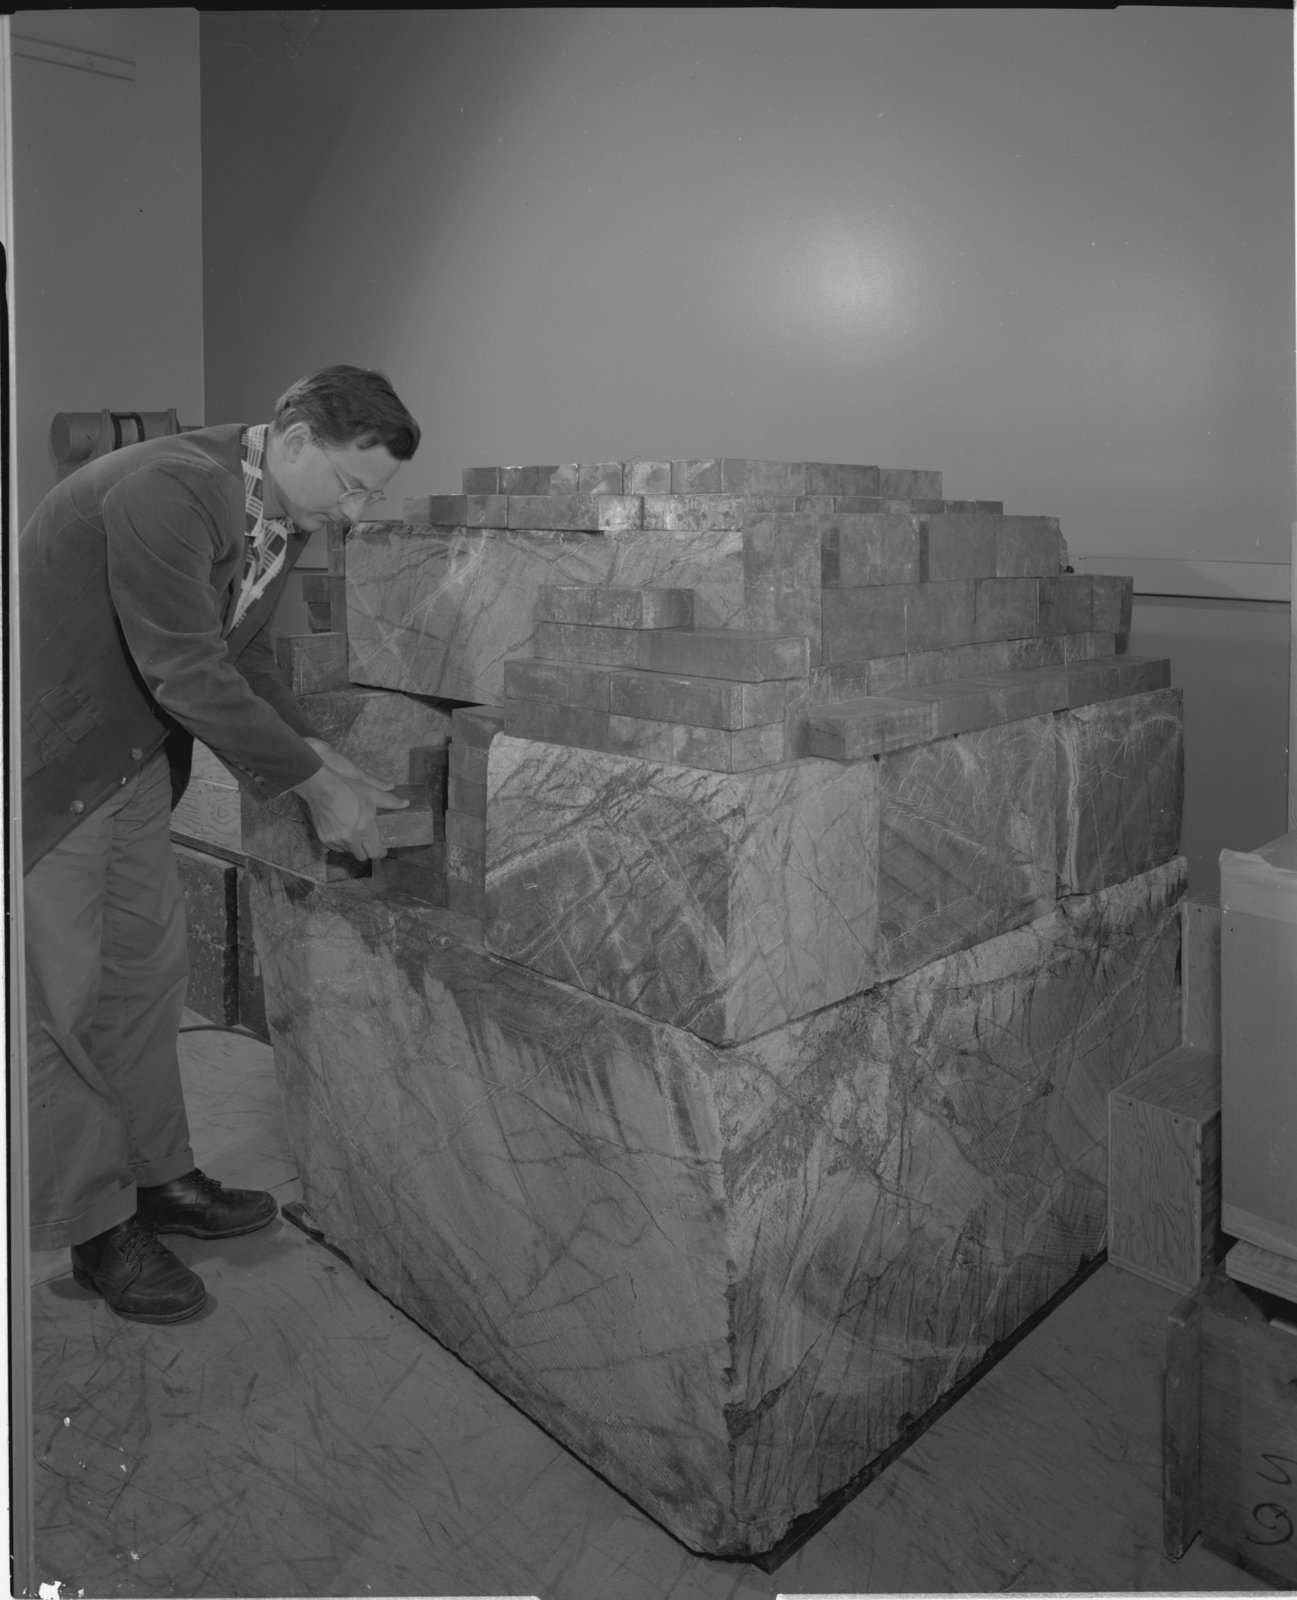 Small scale model of Low Background Counting Facility made of Serpentine, building 72, with Al Smith. Photograph taken June 6, 1962. Health Pro-1003